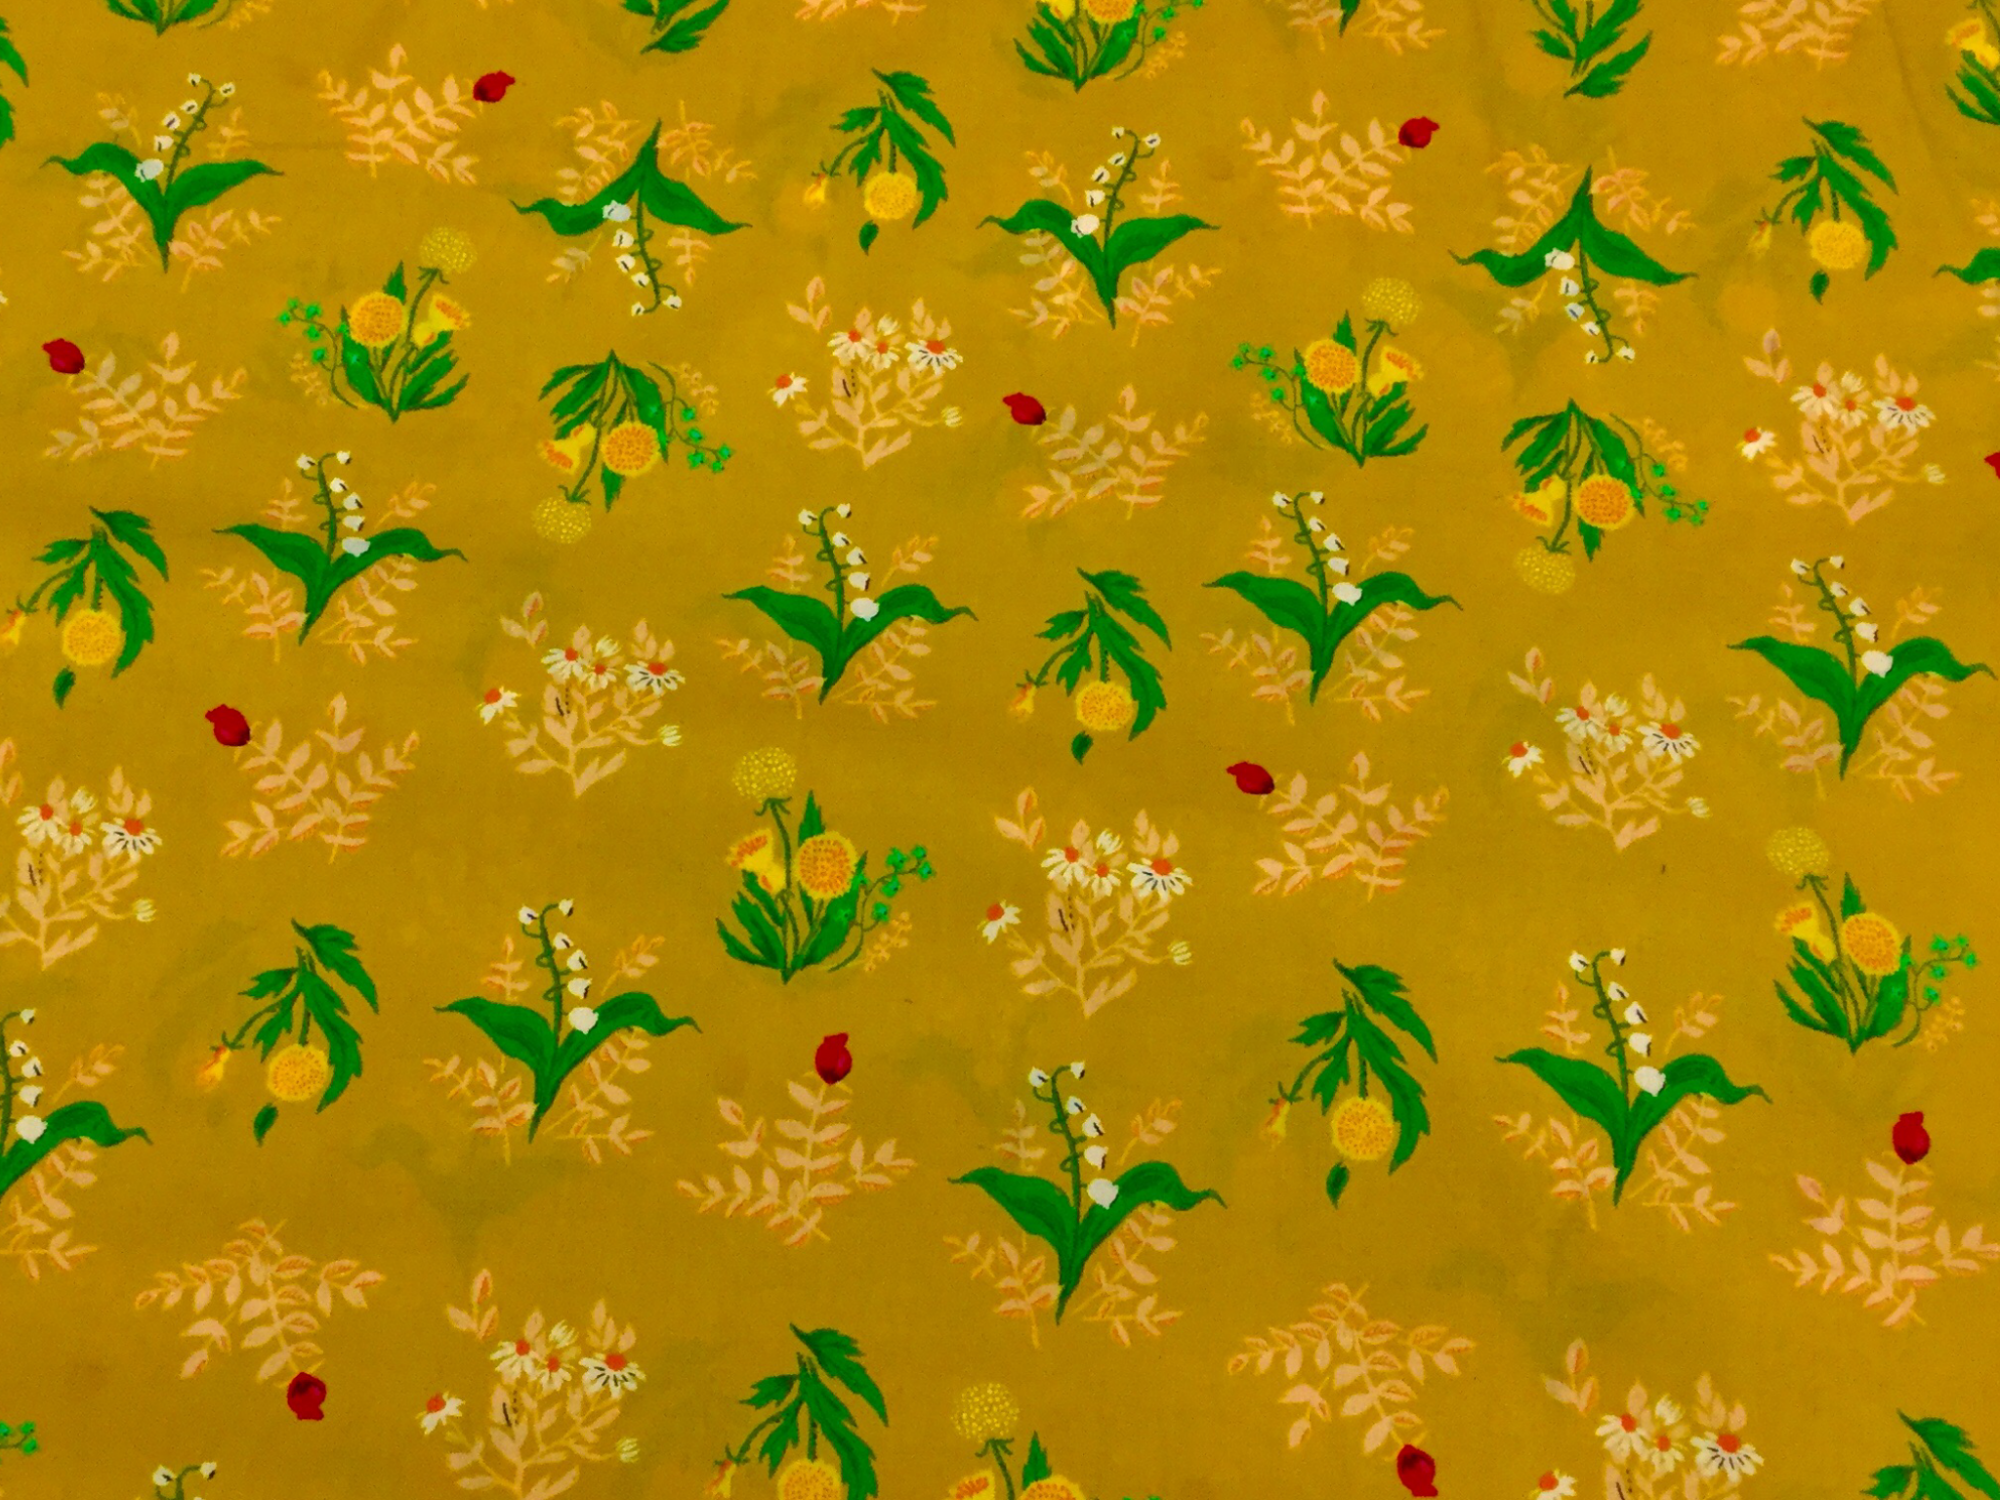 Heather Ross Sleeping Porch Golden Mustard Yellow Lily of the Valley Floral LAWN Cotton Fabric Wi95